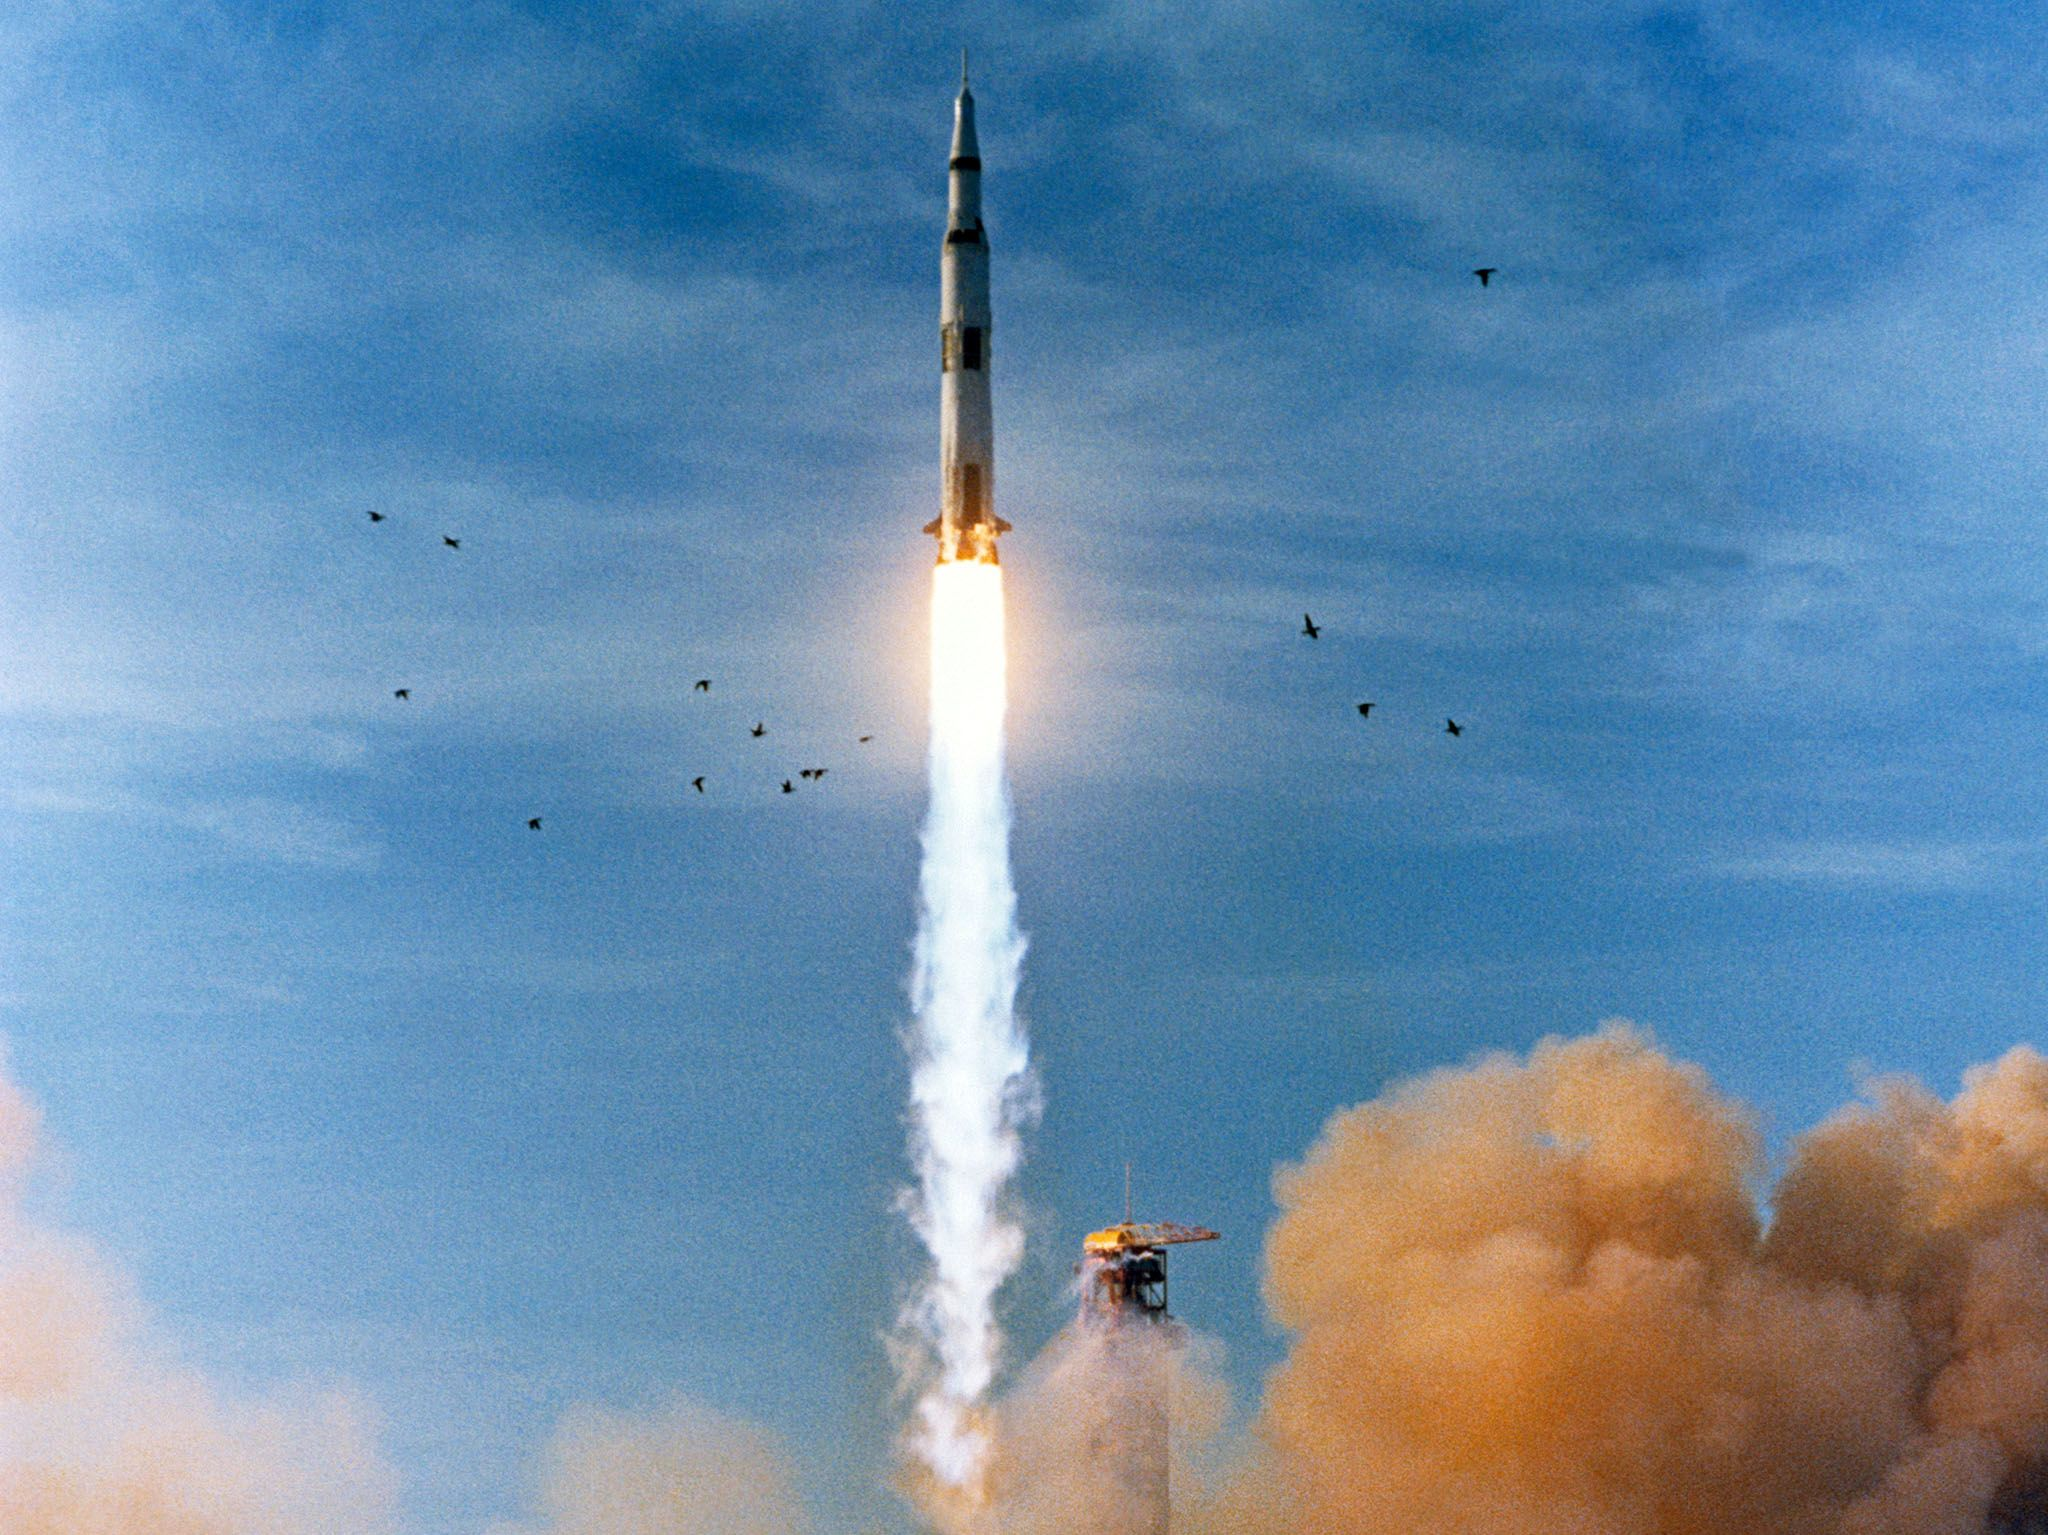 Dec. 21, 1968, Apollo 8 launched from Pad A, Launch Complex 39, Kennedy Space Center at 7:51... [Foto del giorno - aprile 2019]